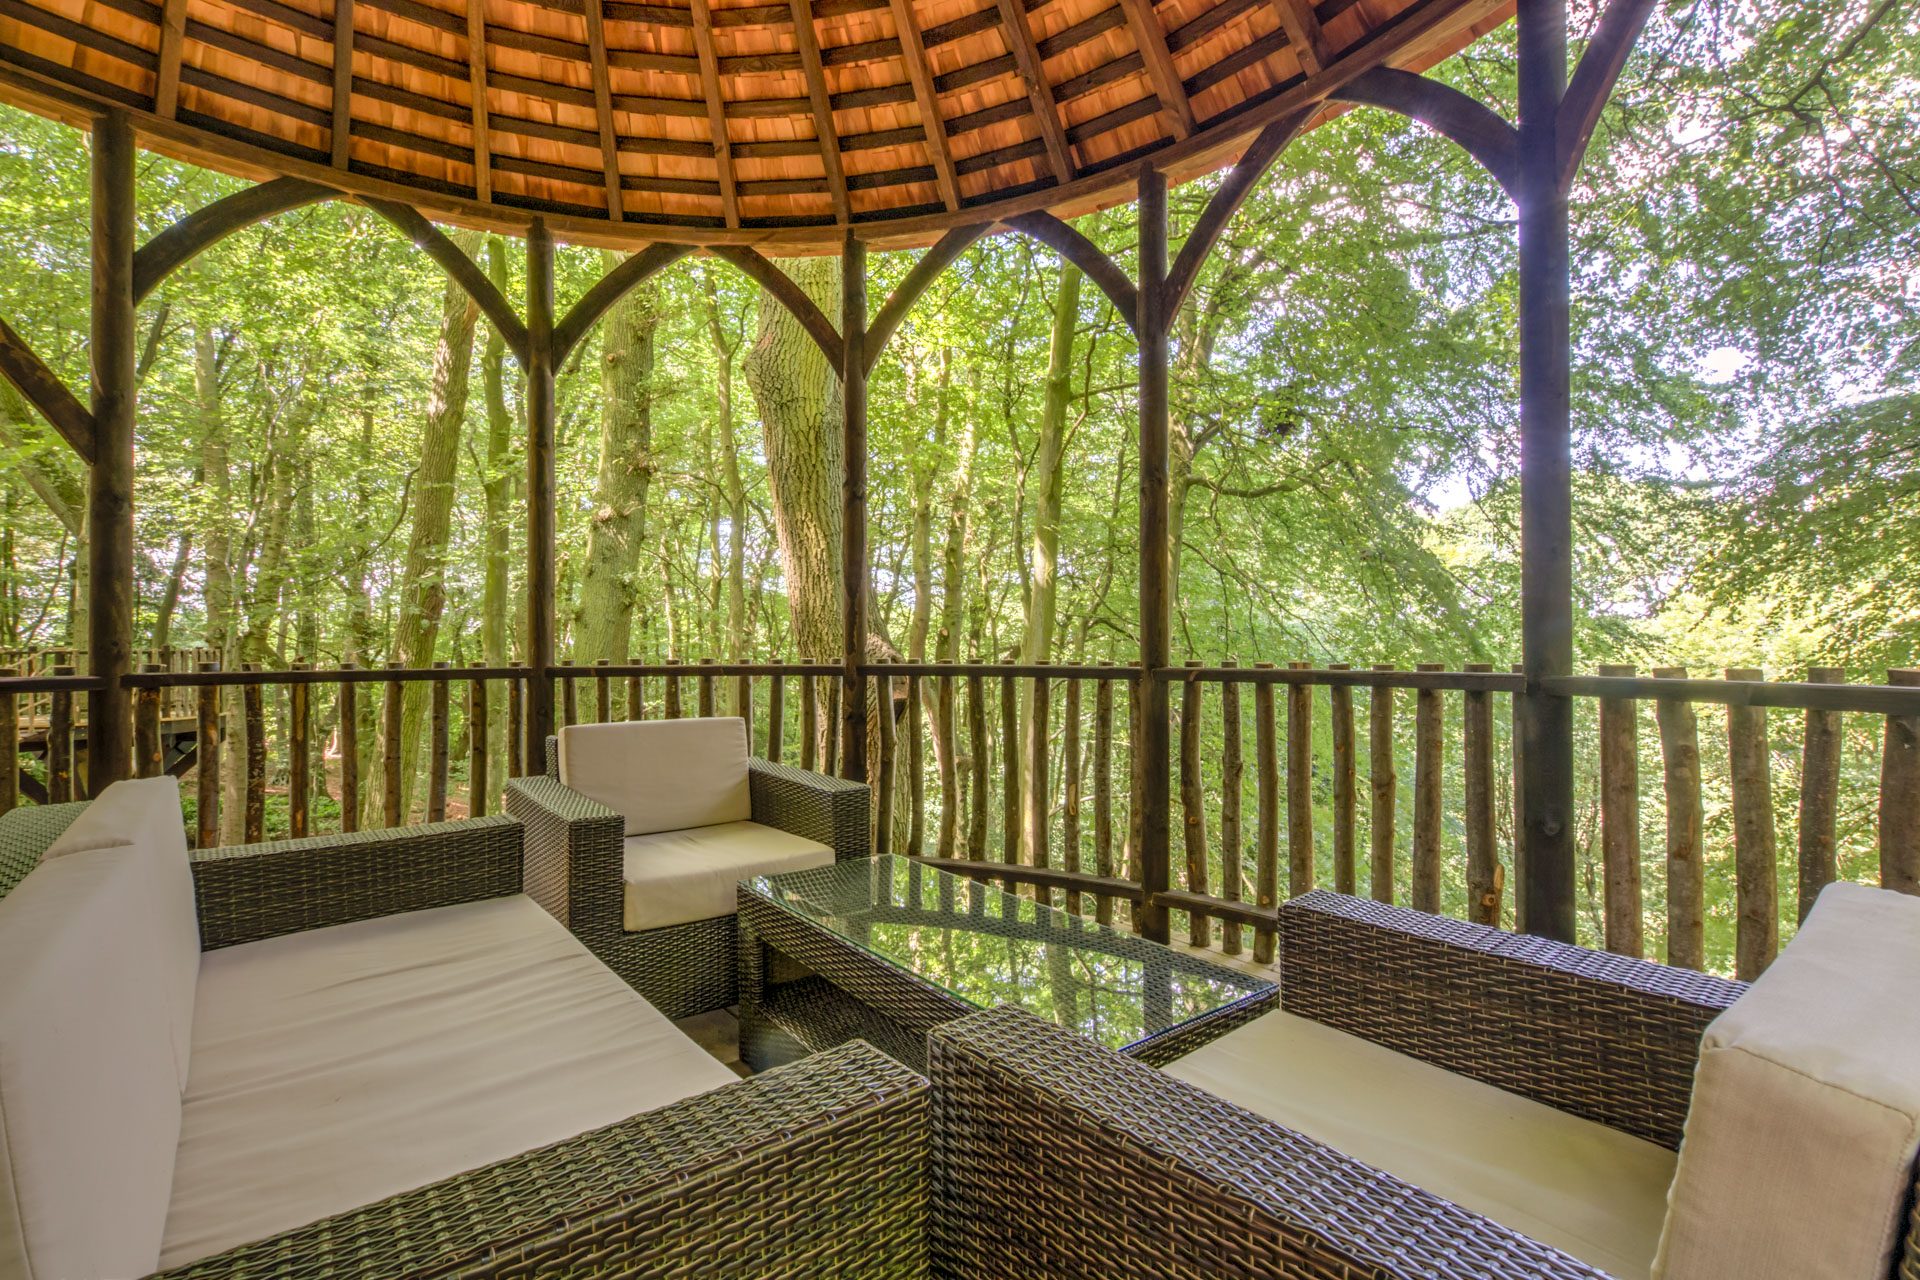 Relax in an ancient woodland